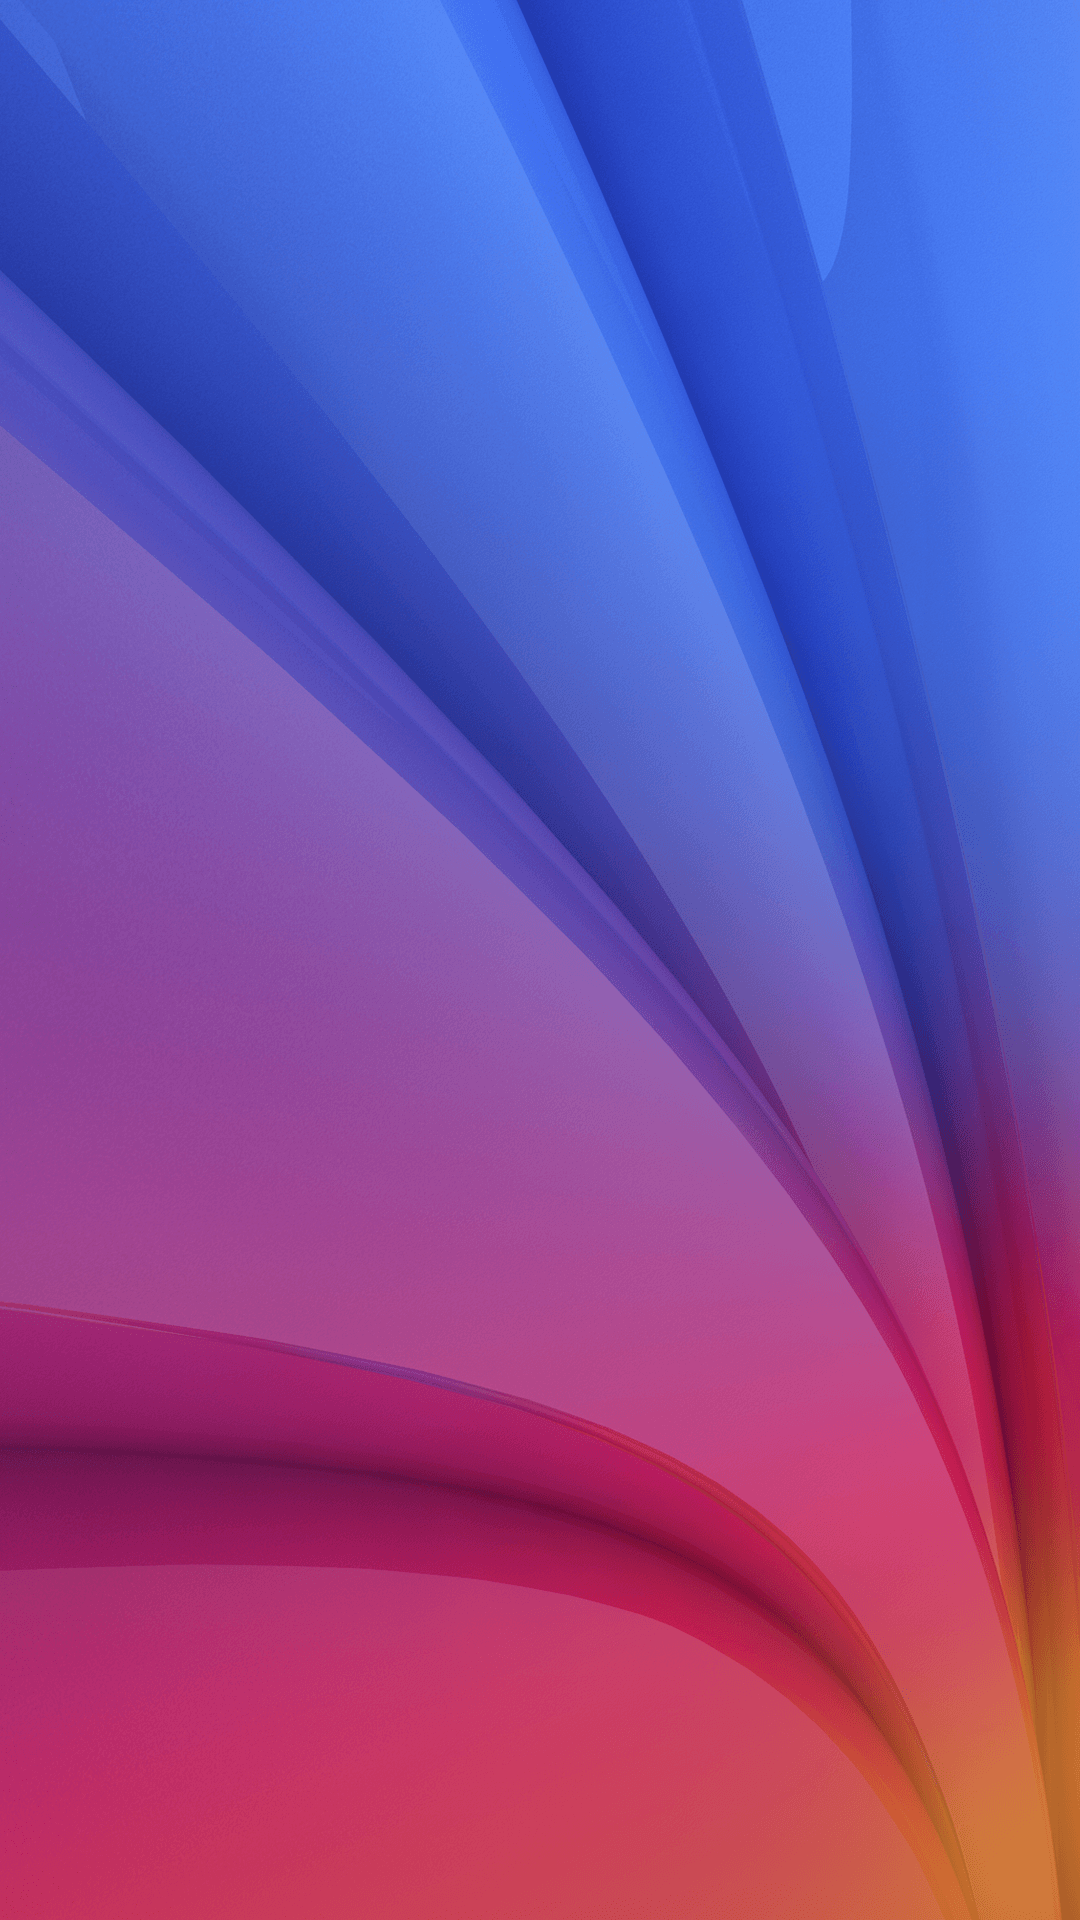 Hd wallpaper vivo - Vivo X6s And X6s Plus Stock Wallpapers Available Download Now